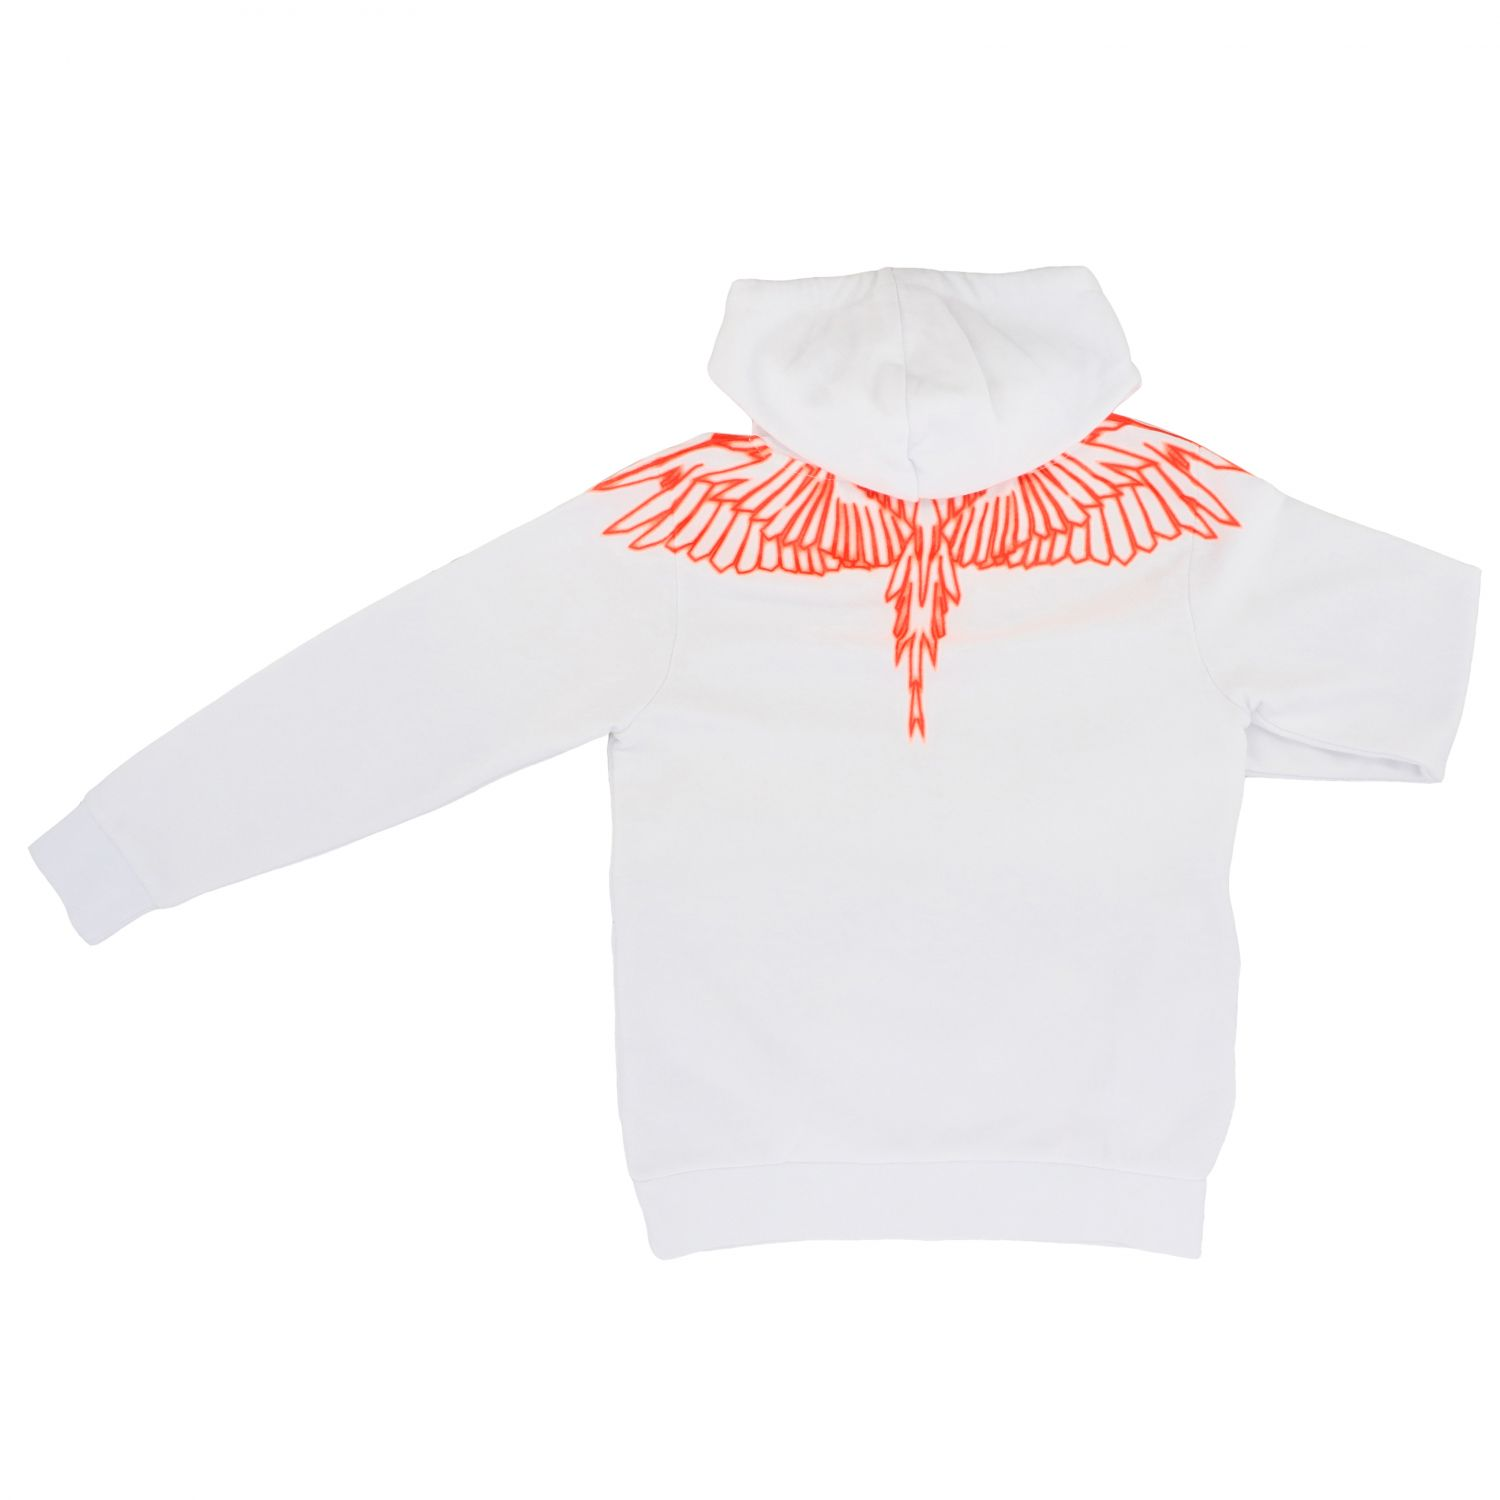 Marcelo Burlon hooded sweatshirt with feathers print black 2